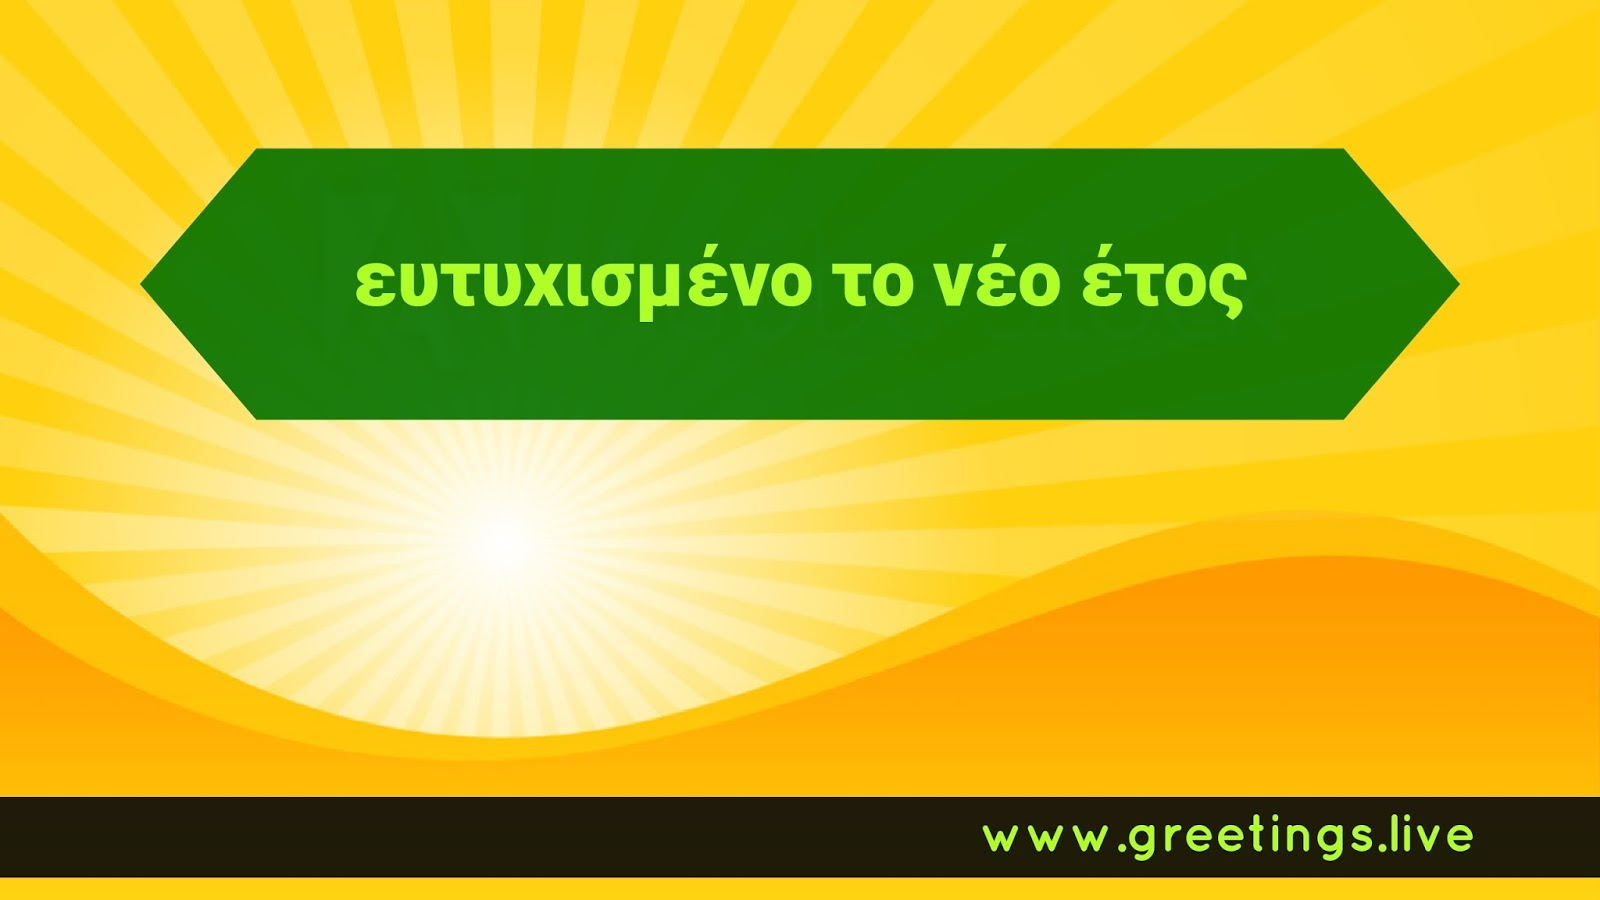 Greetingsve hd images love smile birthday wishes free download happy new year in greek language sun rise time new year 2018 greetings in yellow colour theme kristyandbryce Images